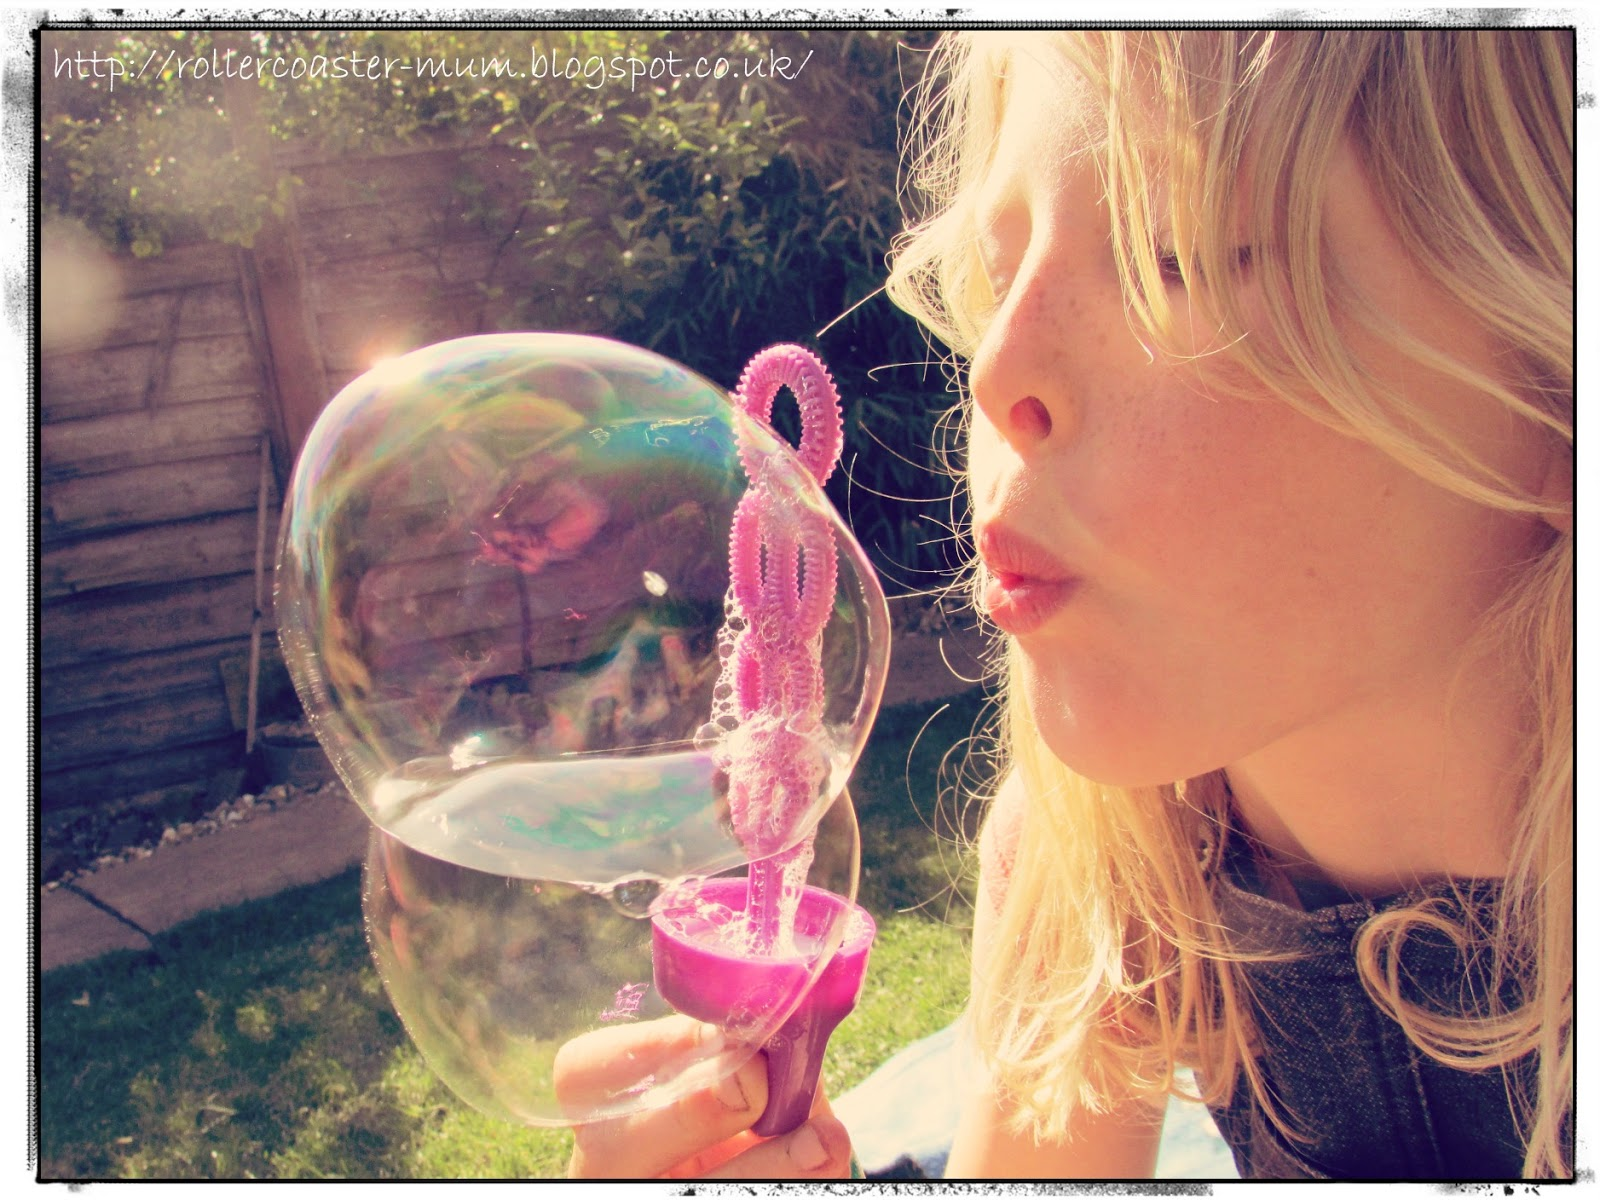 Blowing bubbles in the garden